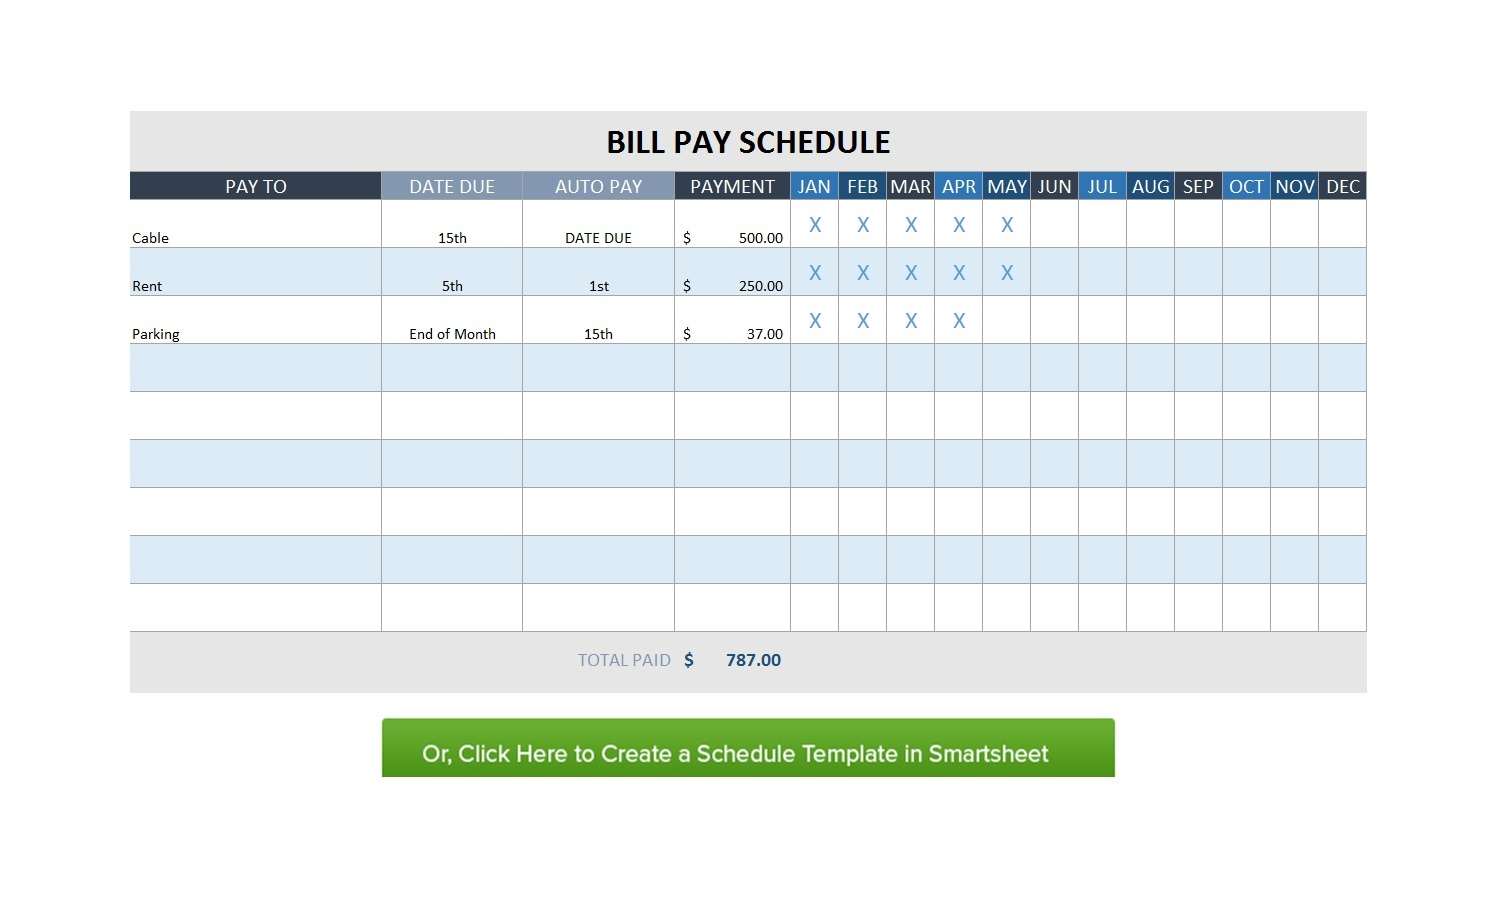 32 Free Bill Pay Checklists & Bill Calendars (Pdf, Word & Excel) - Free Printable Bill Payment Schedule